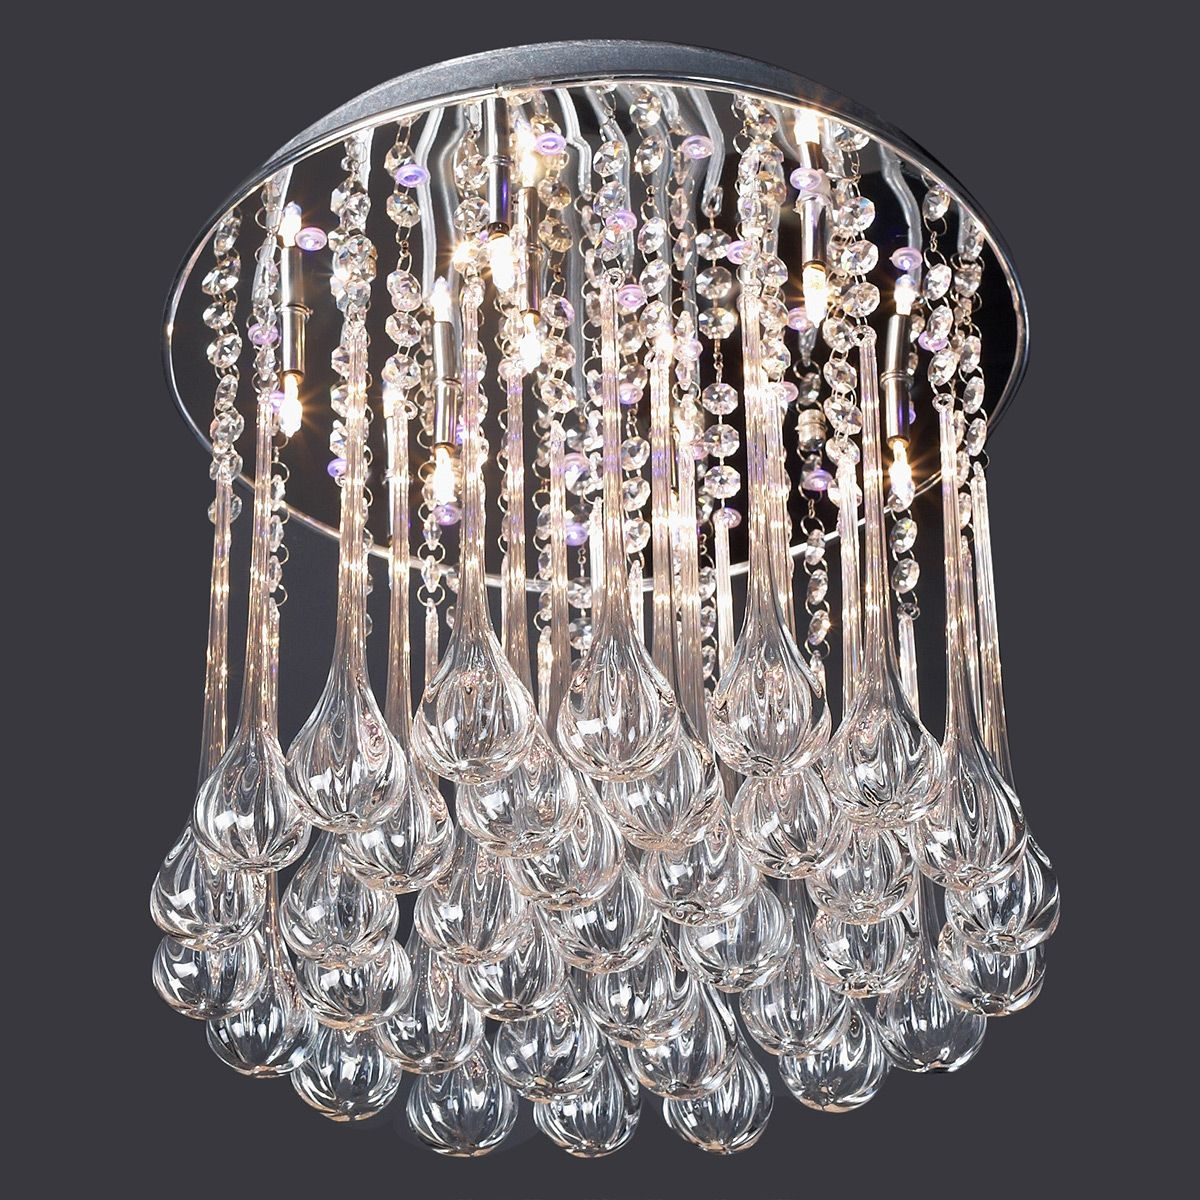 Incredible Impressive Unique Crystal Chandeliers Lighting Unique ...